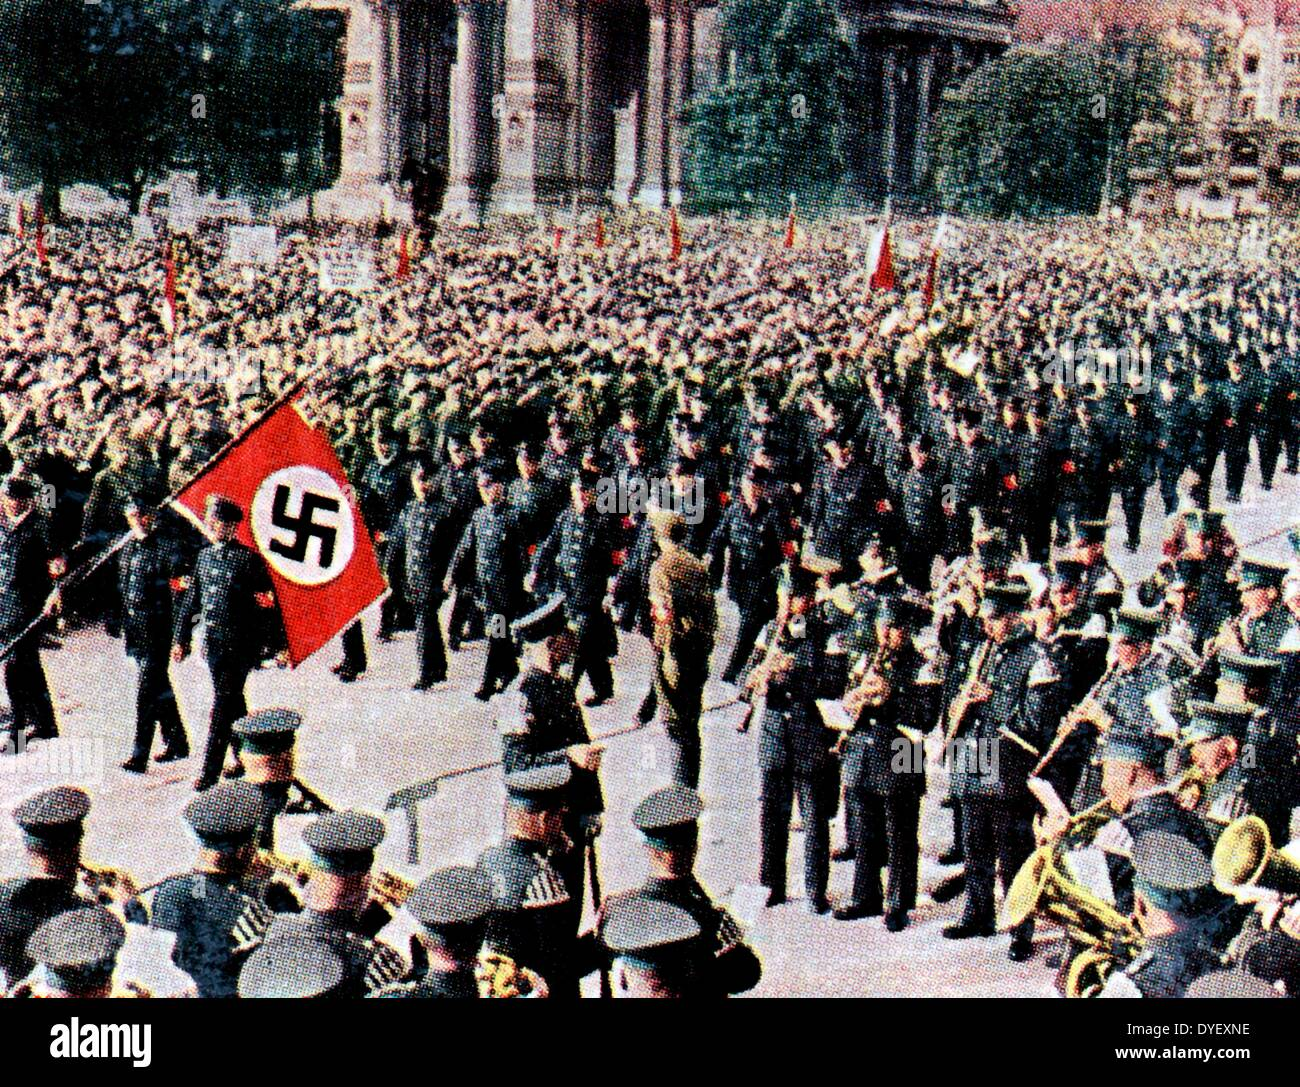 Nazi march in 1930-33 - Stock Image